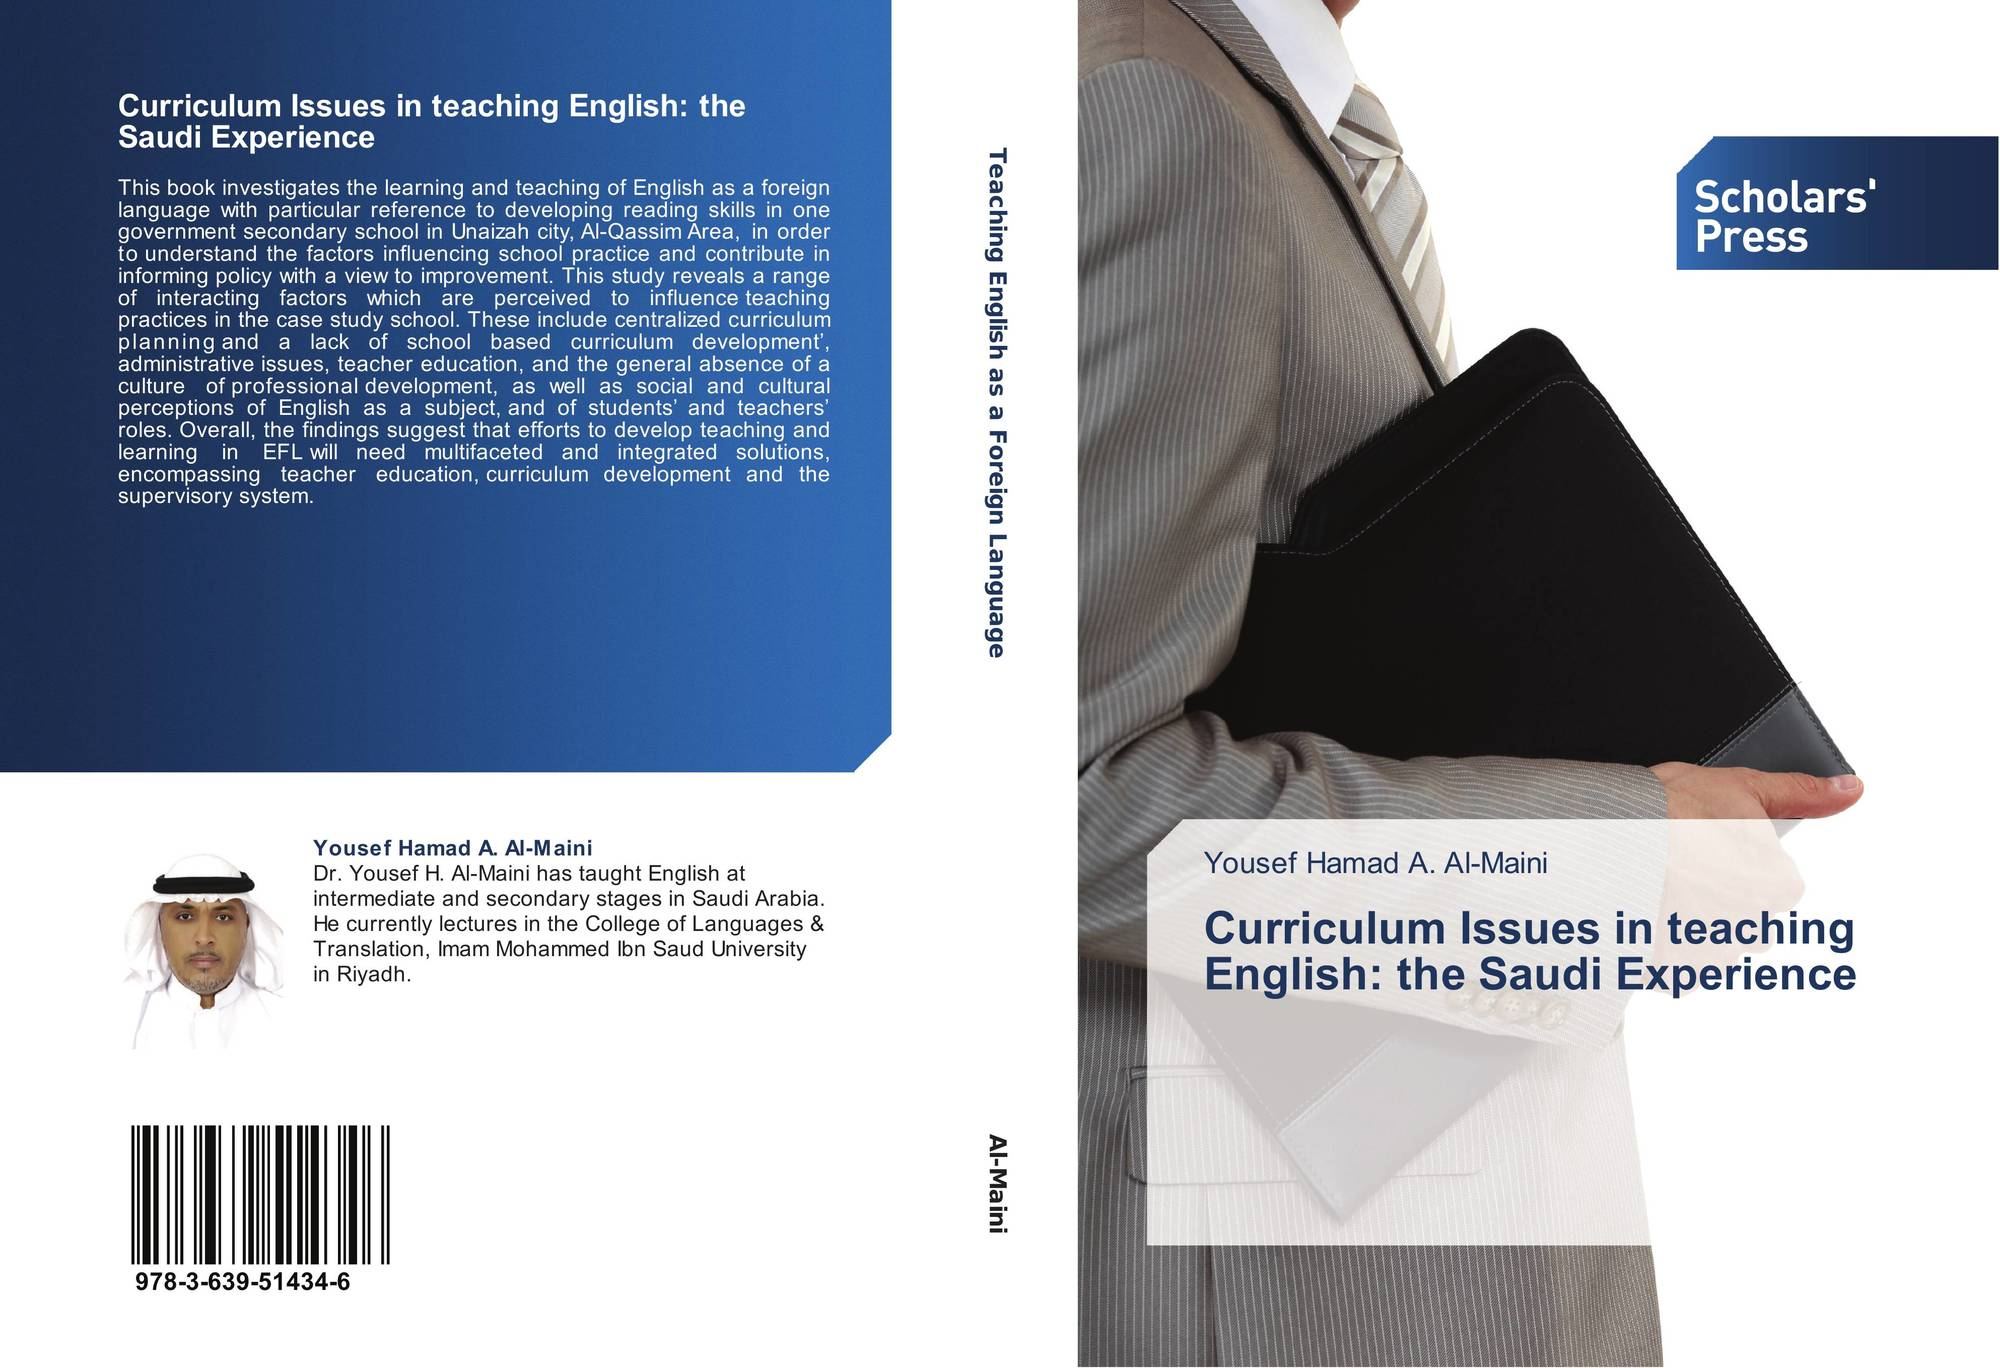 curriculum issues in teaching english  the saudi experience  978